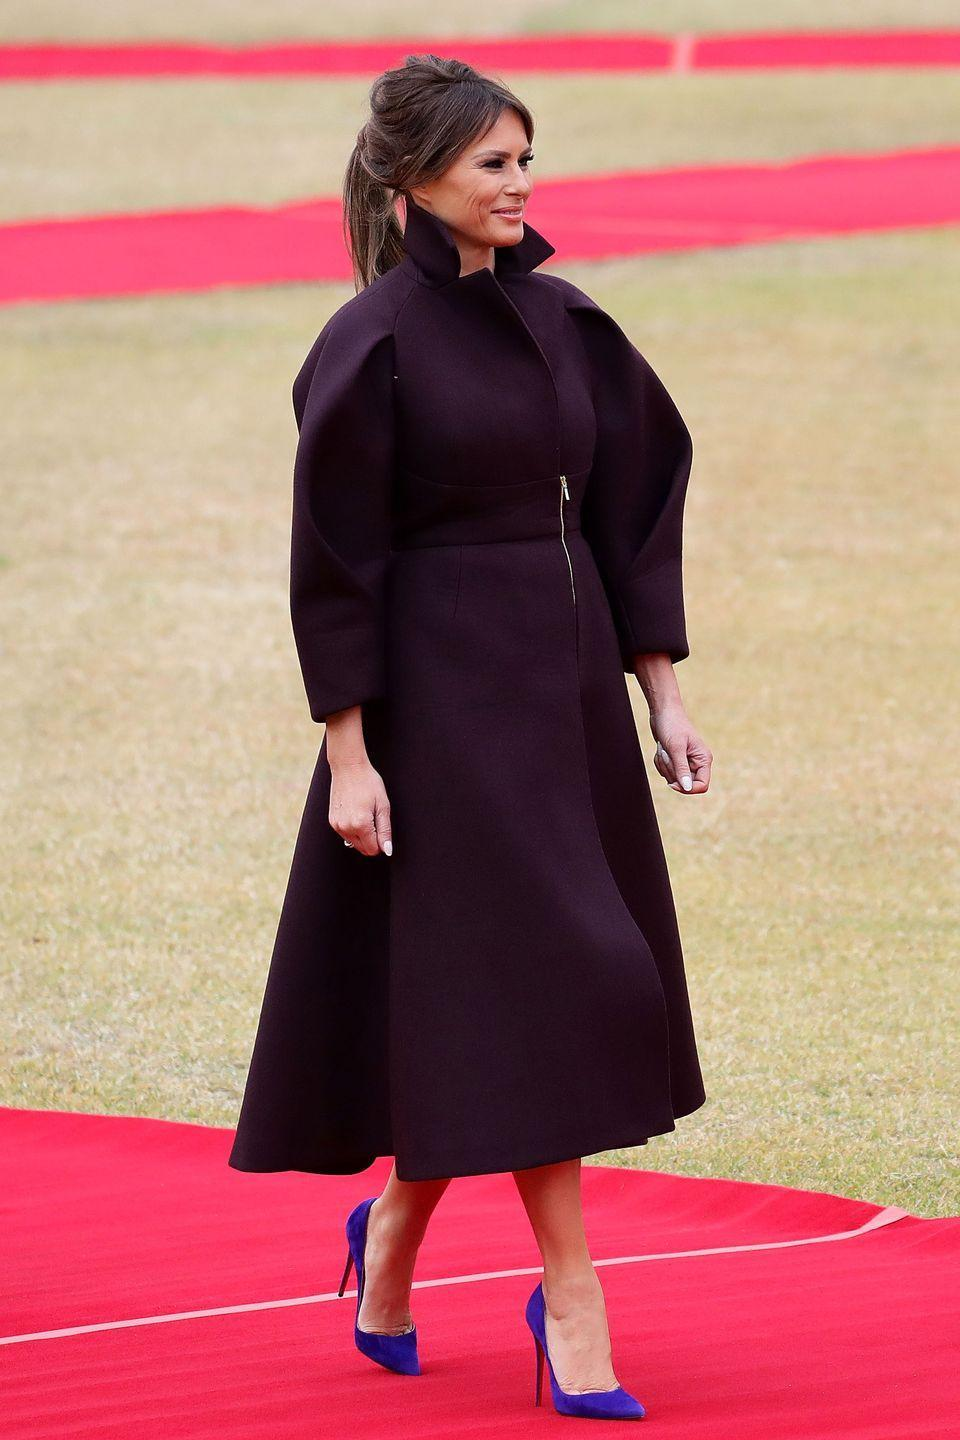 """<p>Arriving in South Korea, FLOTUS wore a deep burgundy Delpozo coat dress paired with blue-violet stiletto pumps. Look familiar? She wore a bright fuchsia dress from the brand in a similar silhouette for her <a href=""""https://www.townandcountrymag.com/society/politics/a12444274/melania-trump-united-nations-speech/"""" rel=""""nofollow noopener"""" target=""""_blank"""" data-ylk=""""slk:United Nations speech"""" class=""""link rapid-noclick-resp"""">United Nations speech</a> back in September.</p>"""